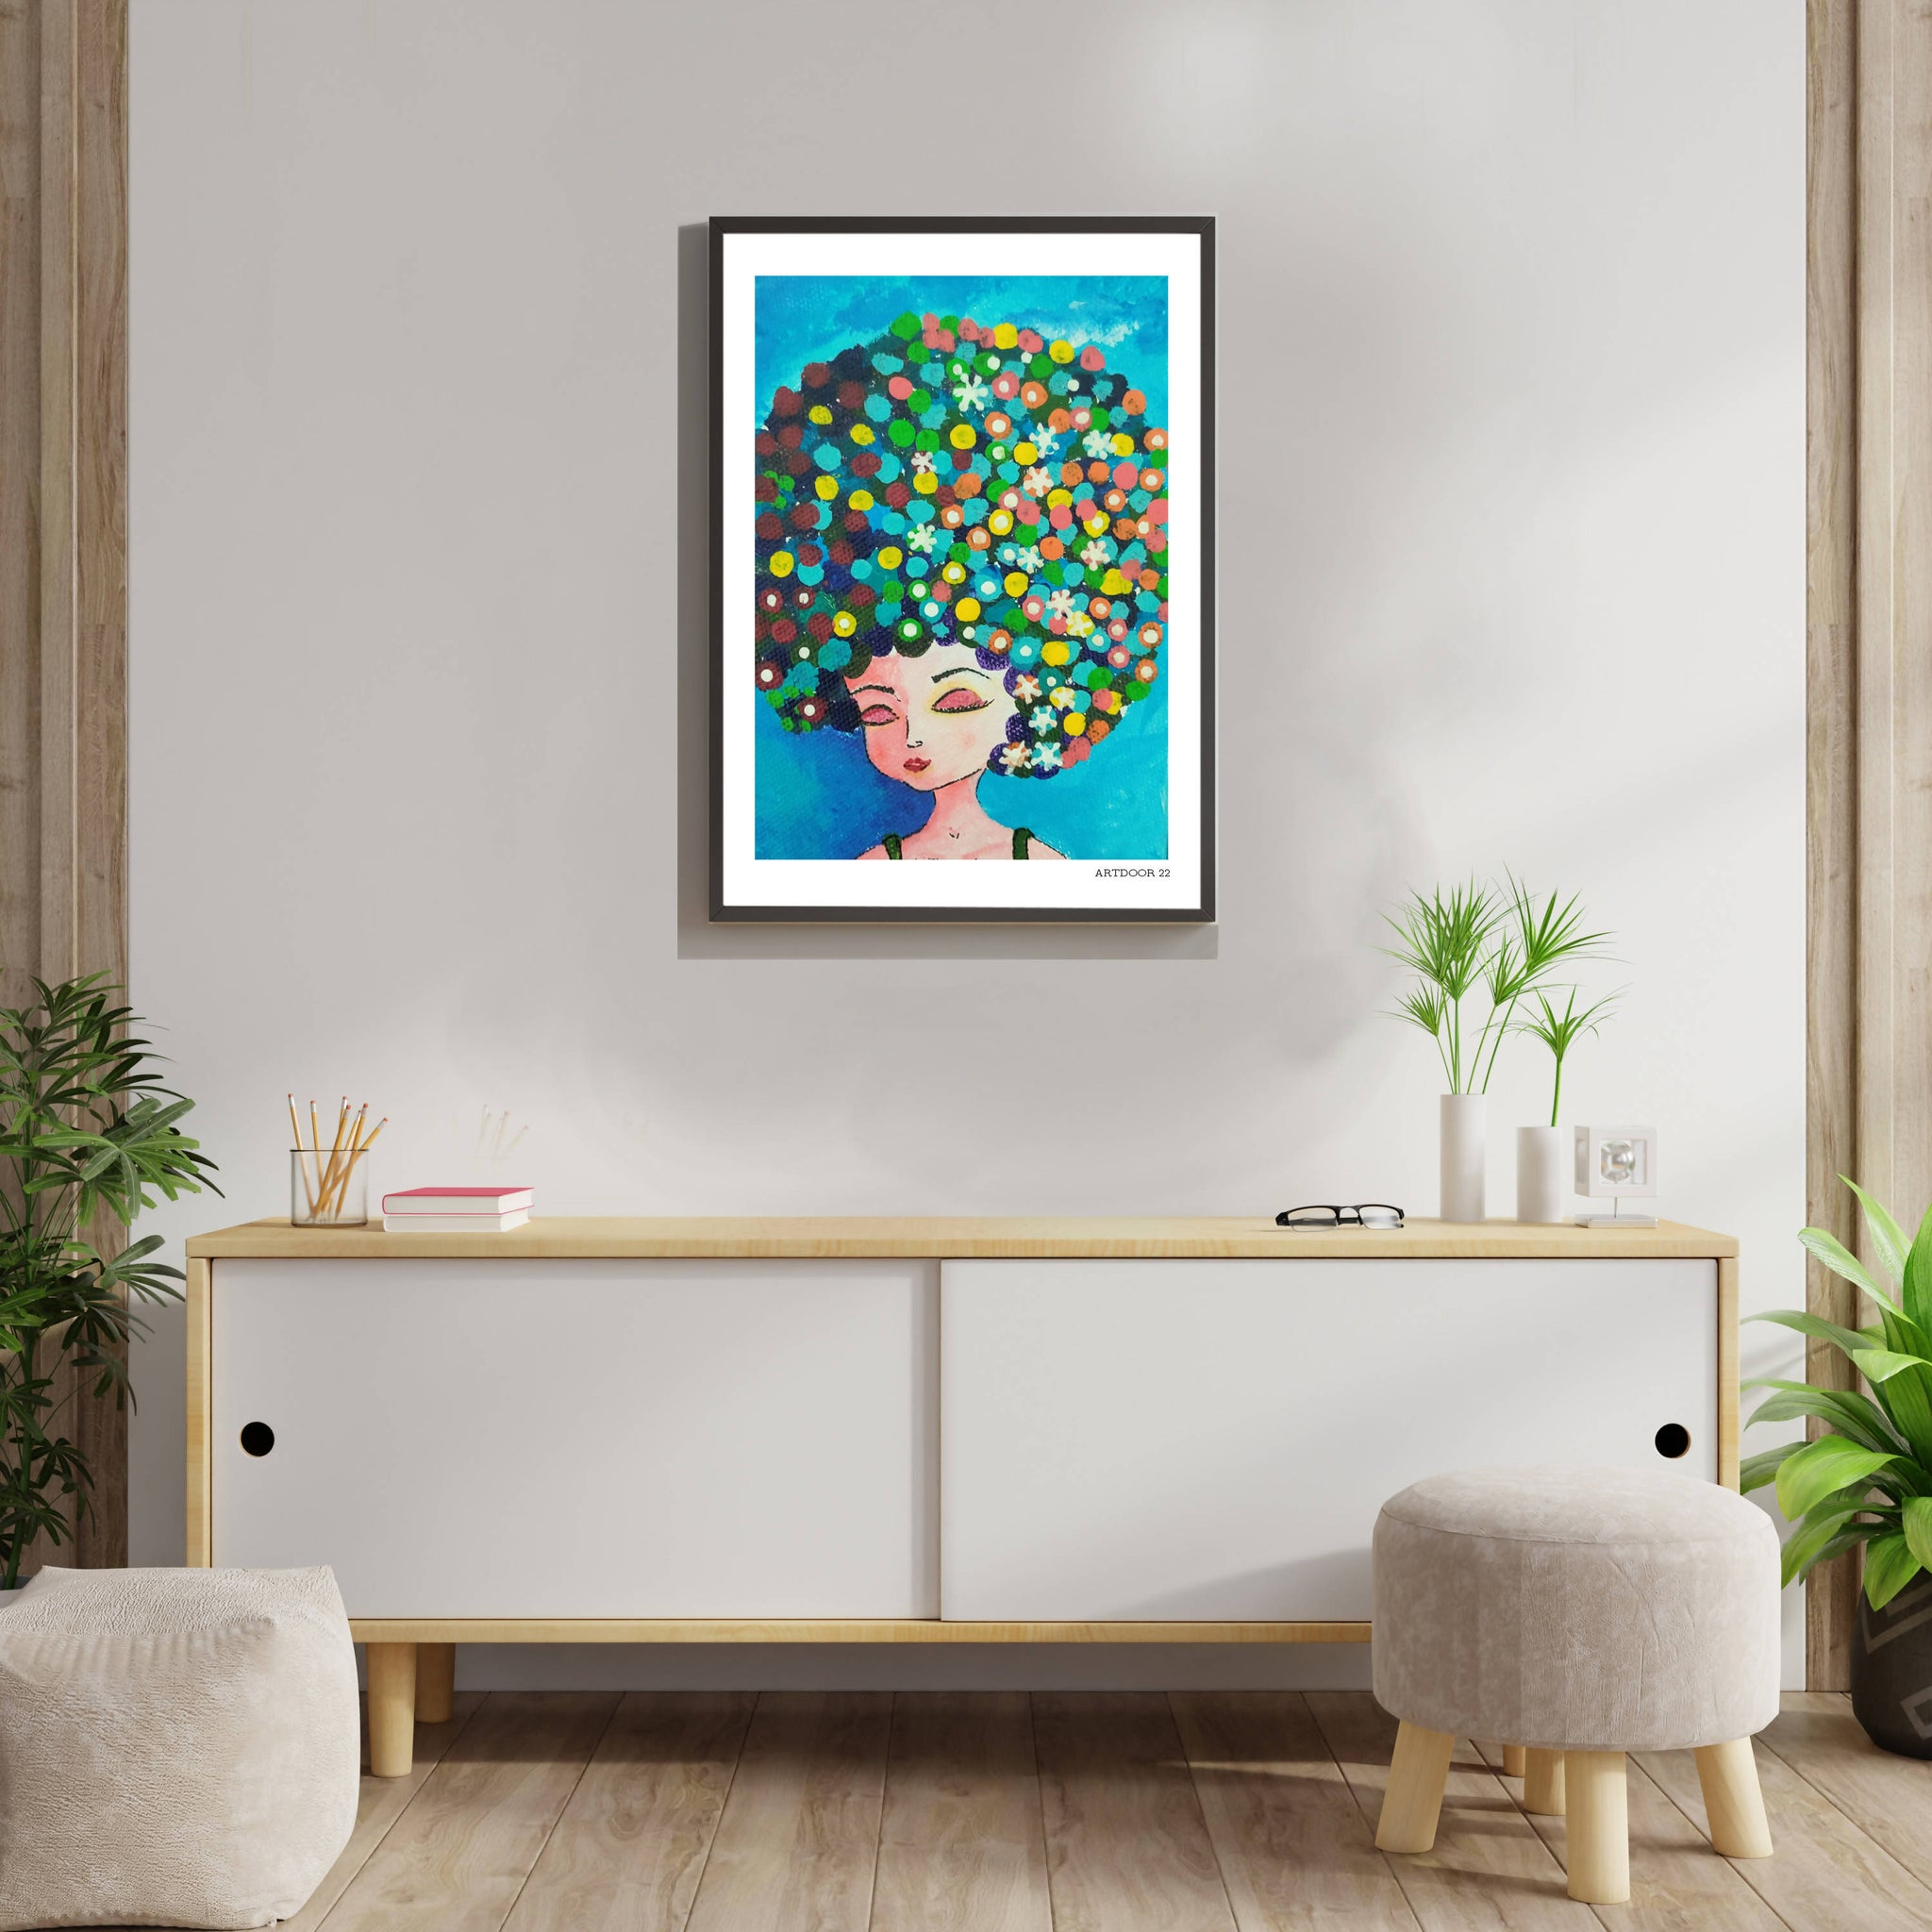 Girl with Highlights - A3 Frame by Artdoor